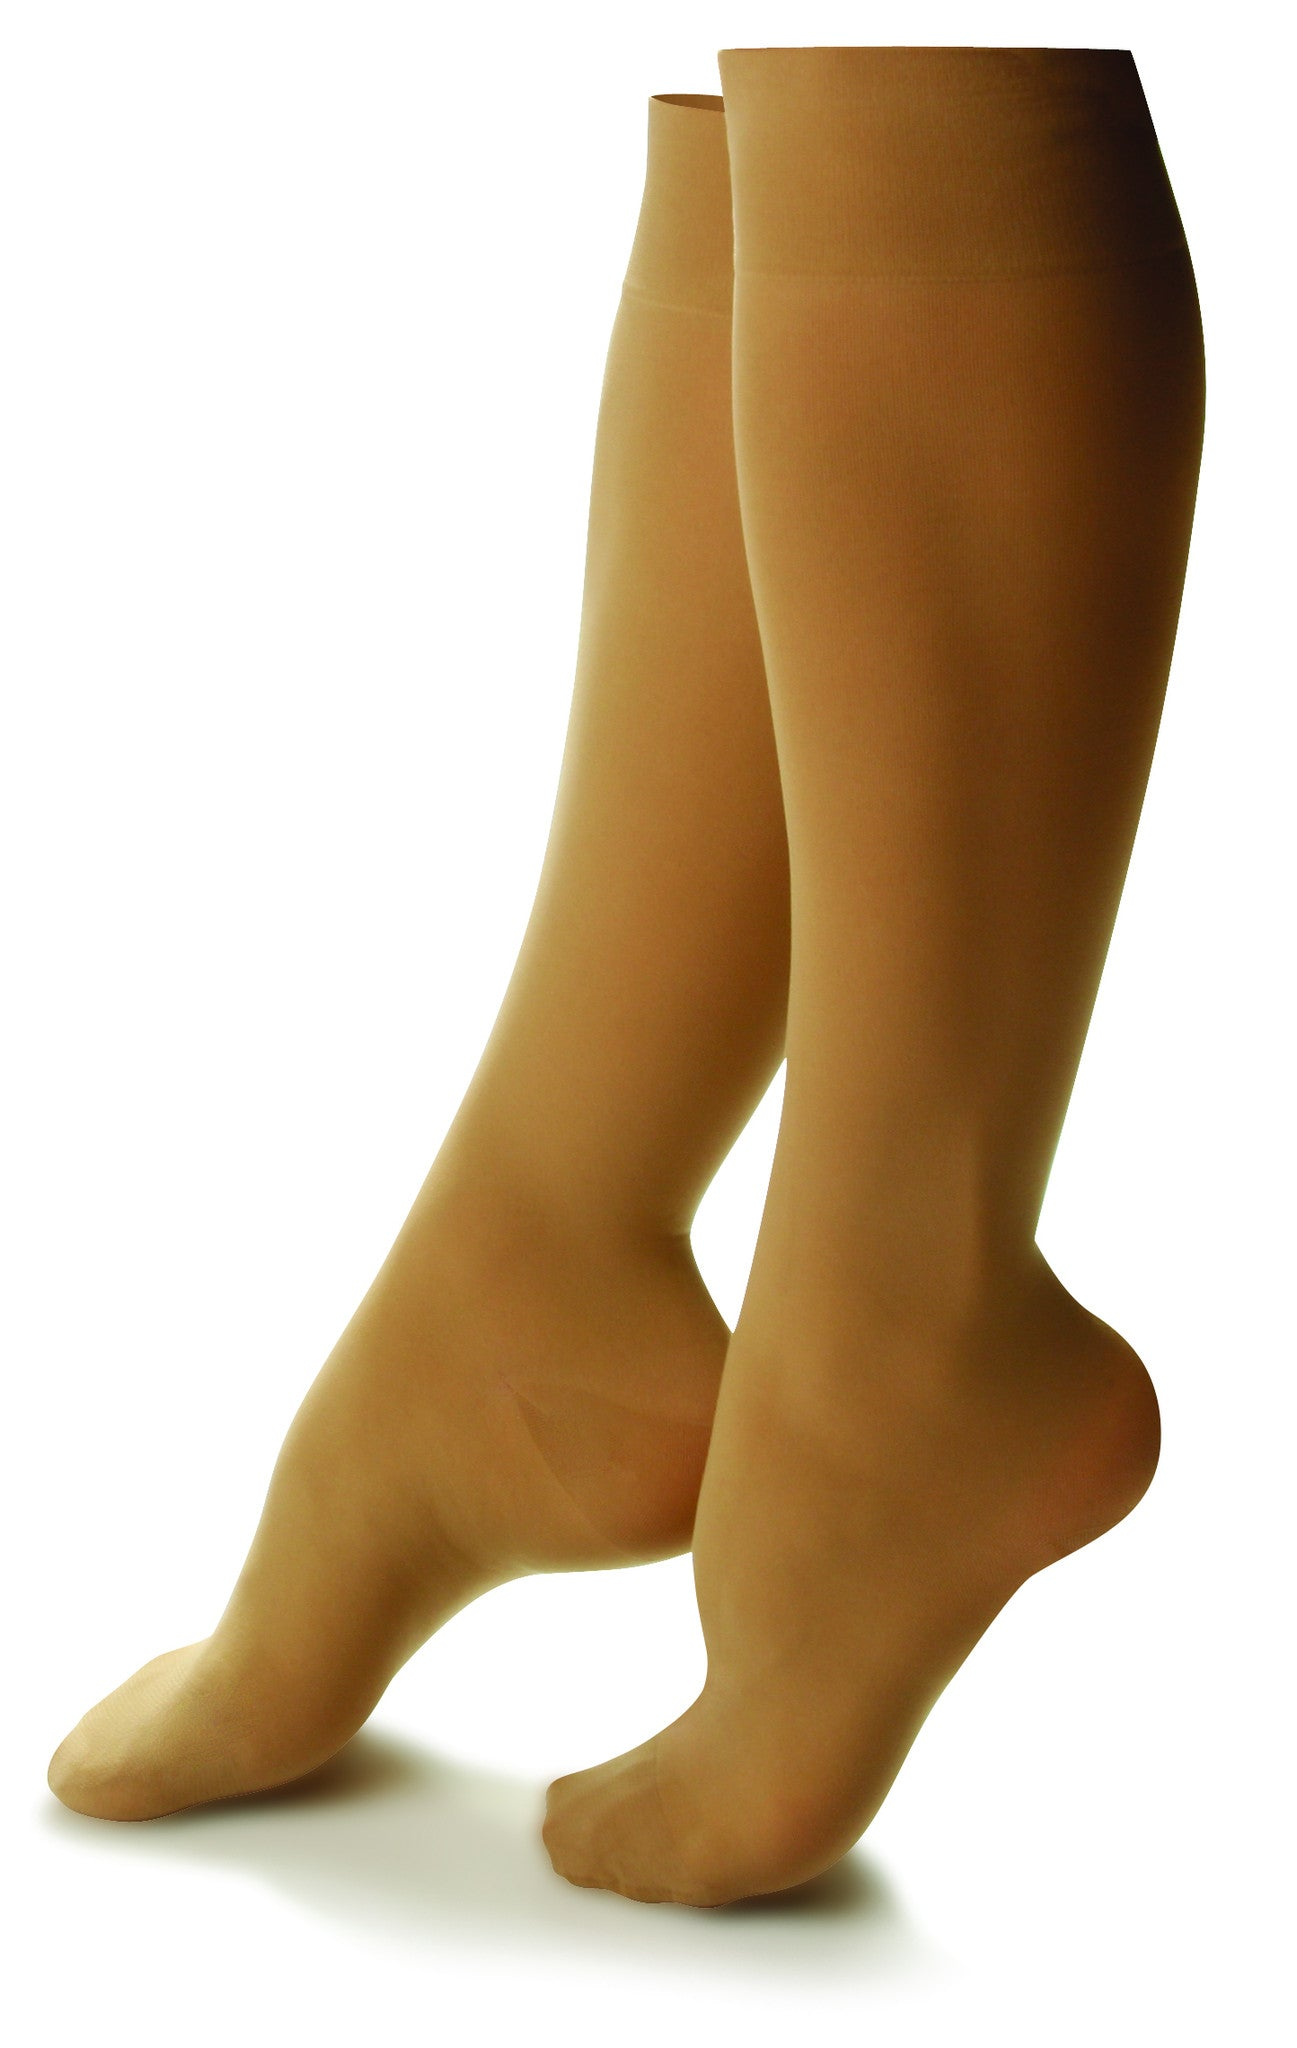 Women's Sheer Comfort Knee High Support Hose in Black, Honey, or Nude